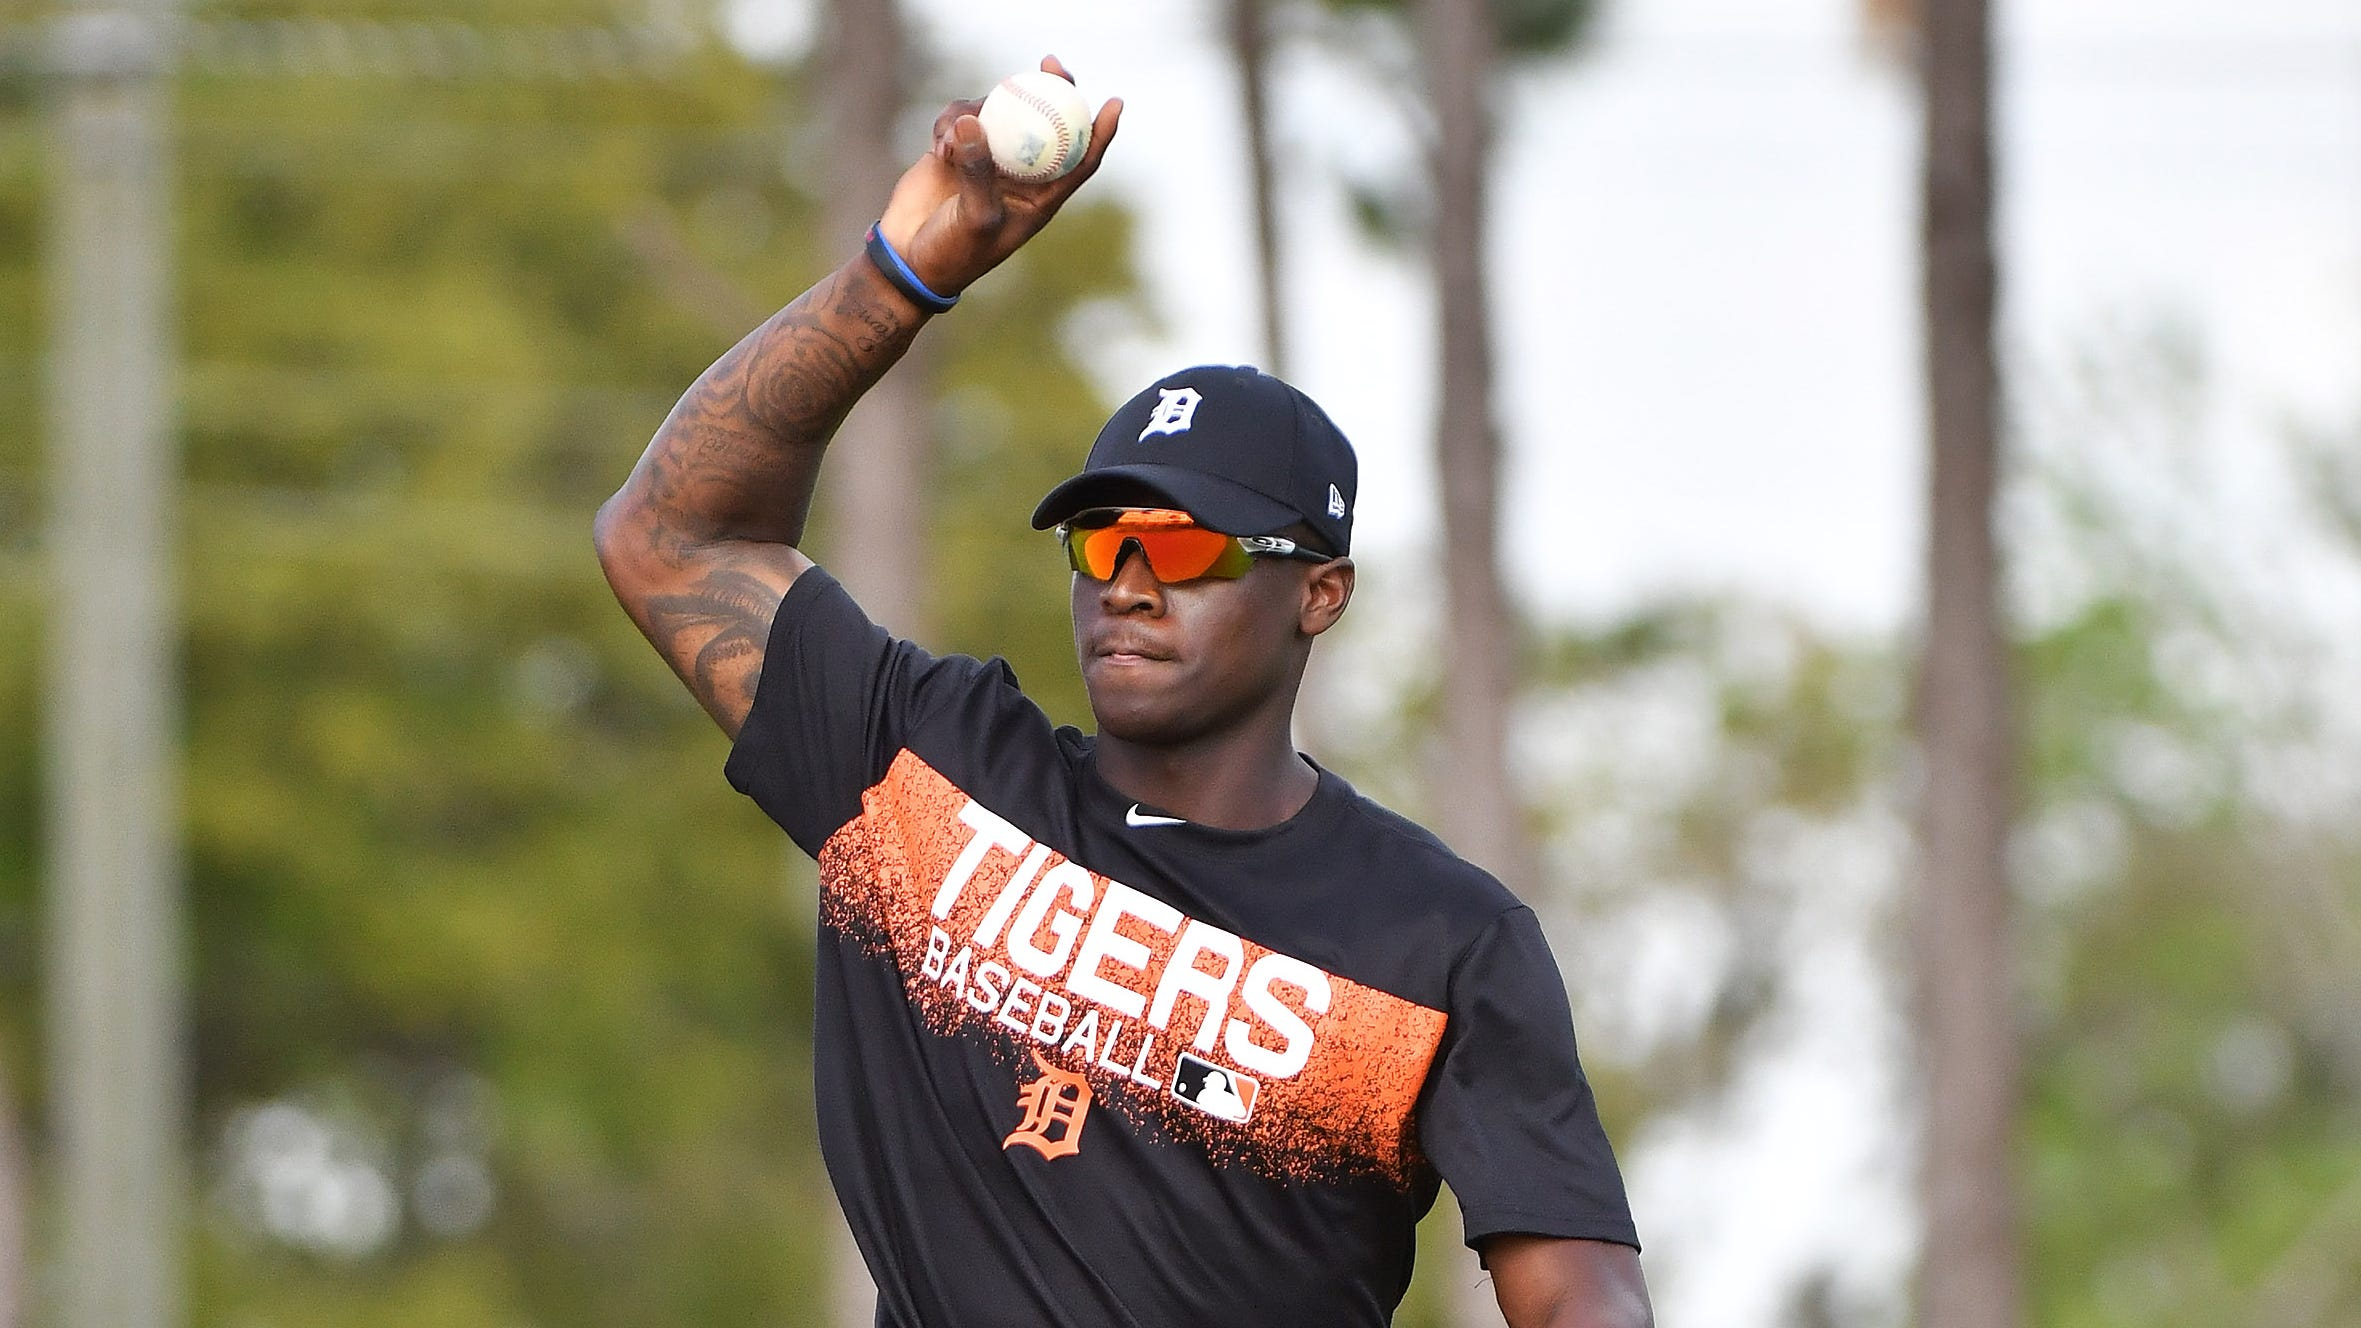 Tigers prospects get taste of tougher competition with late-season promotions